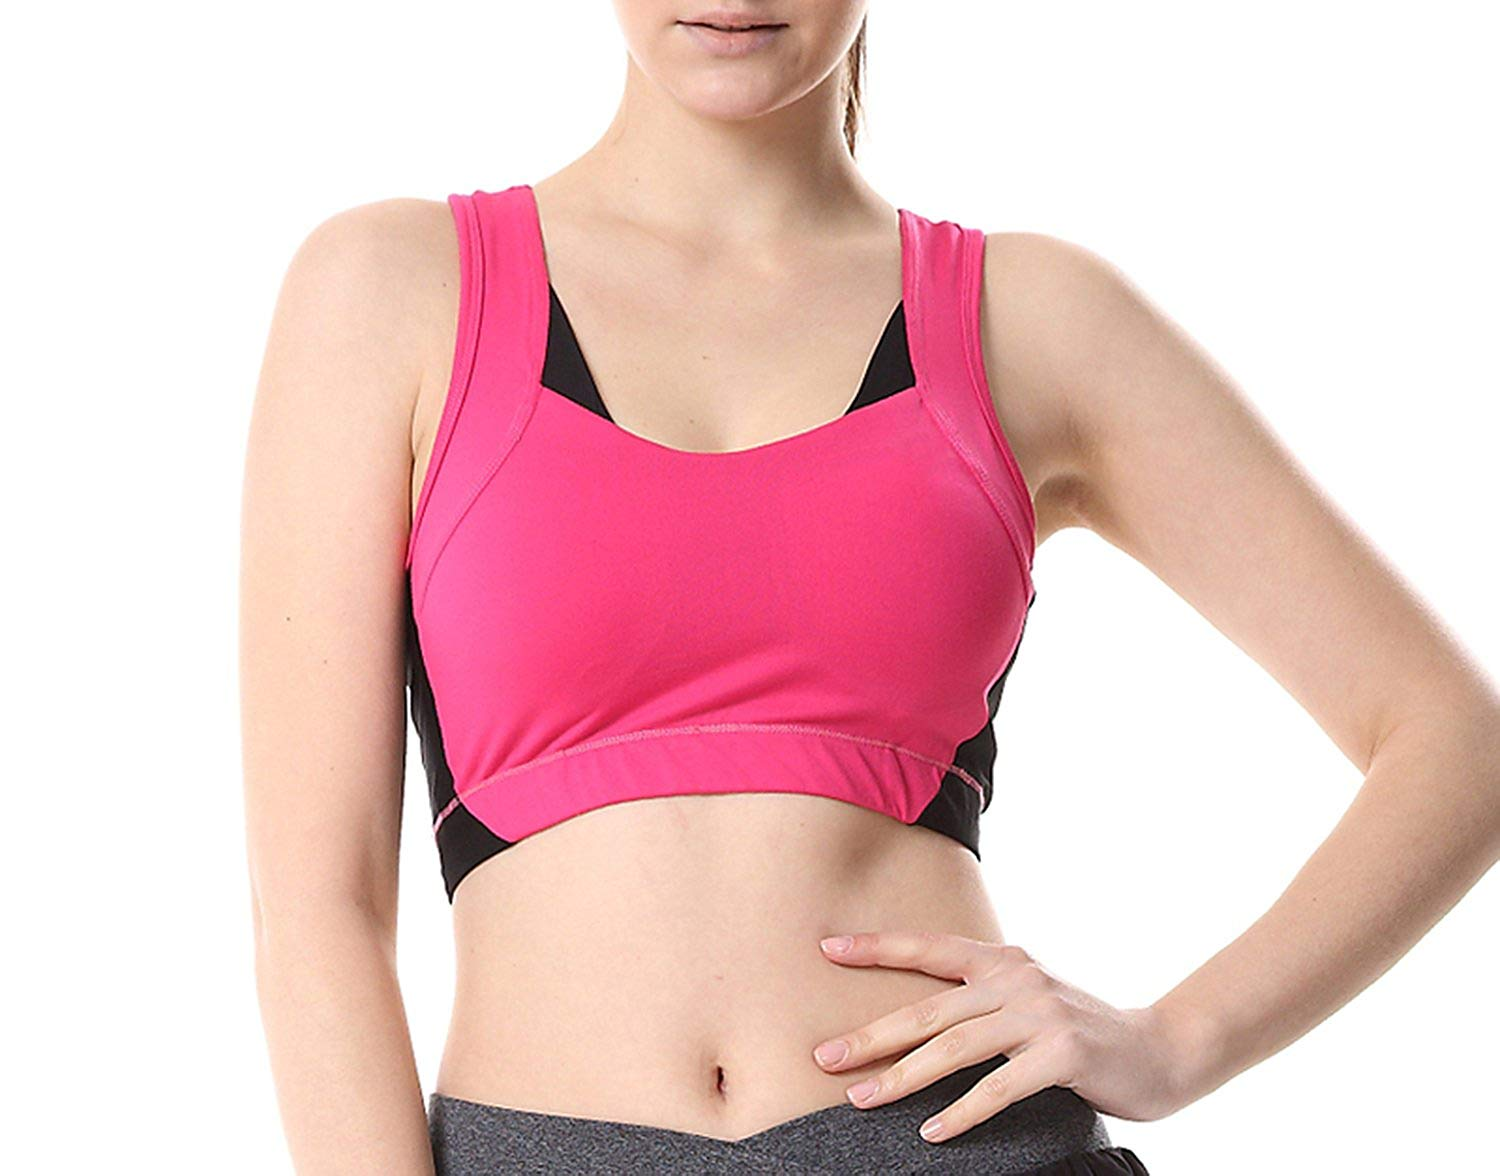 Acereima Summer Women Polyester Stretch Athletic Vest Gym Fitness No Rims Full Cup Padded Bras